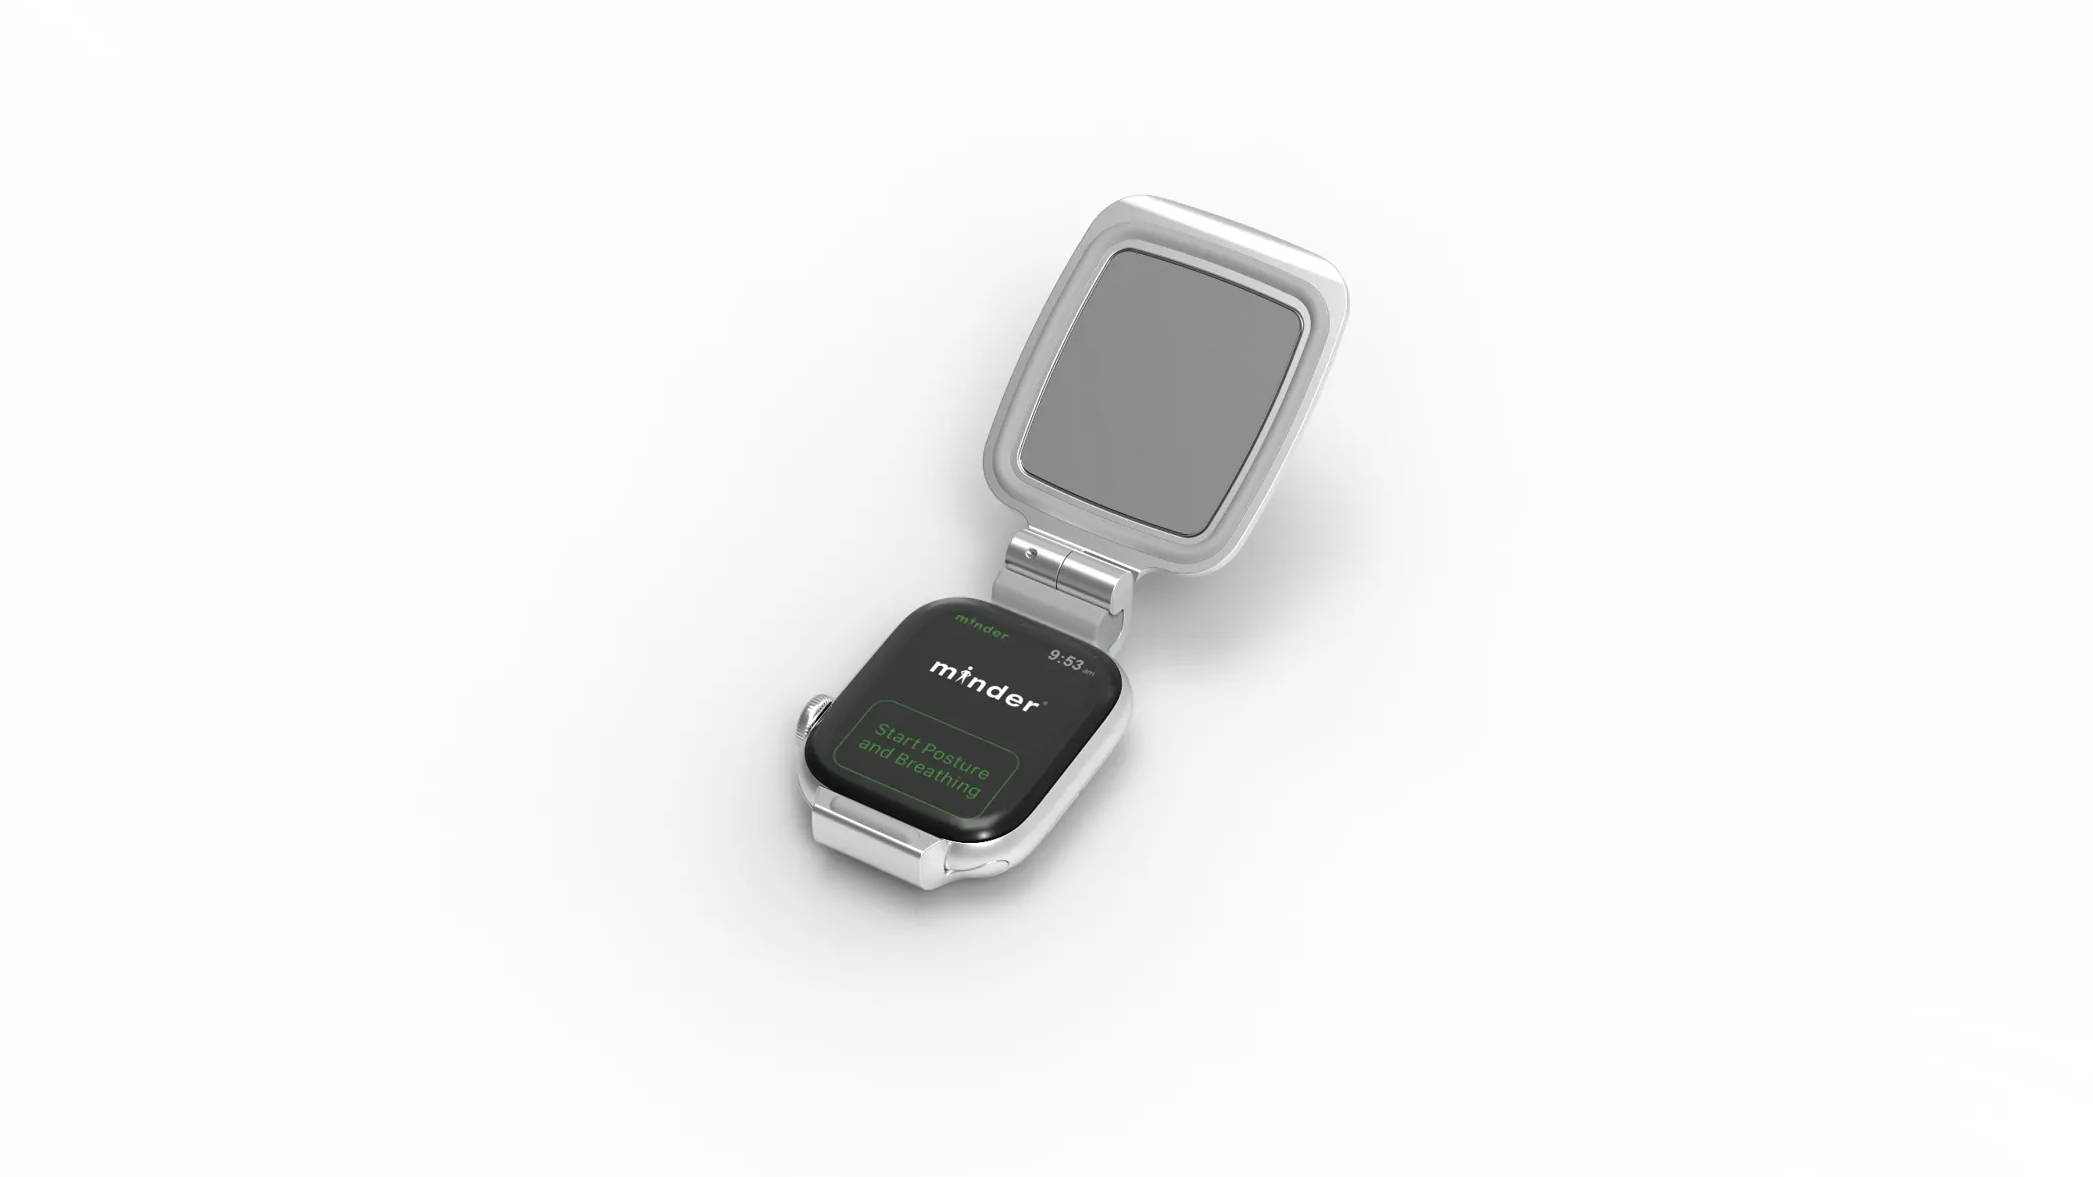 minder clip attached to Apple Watch